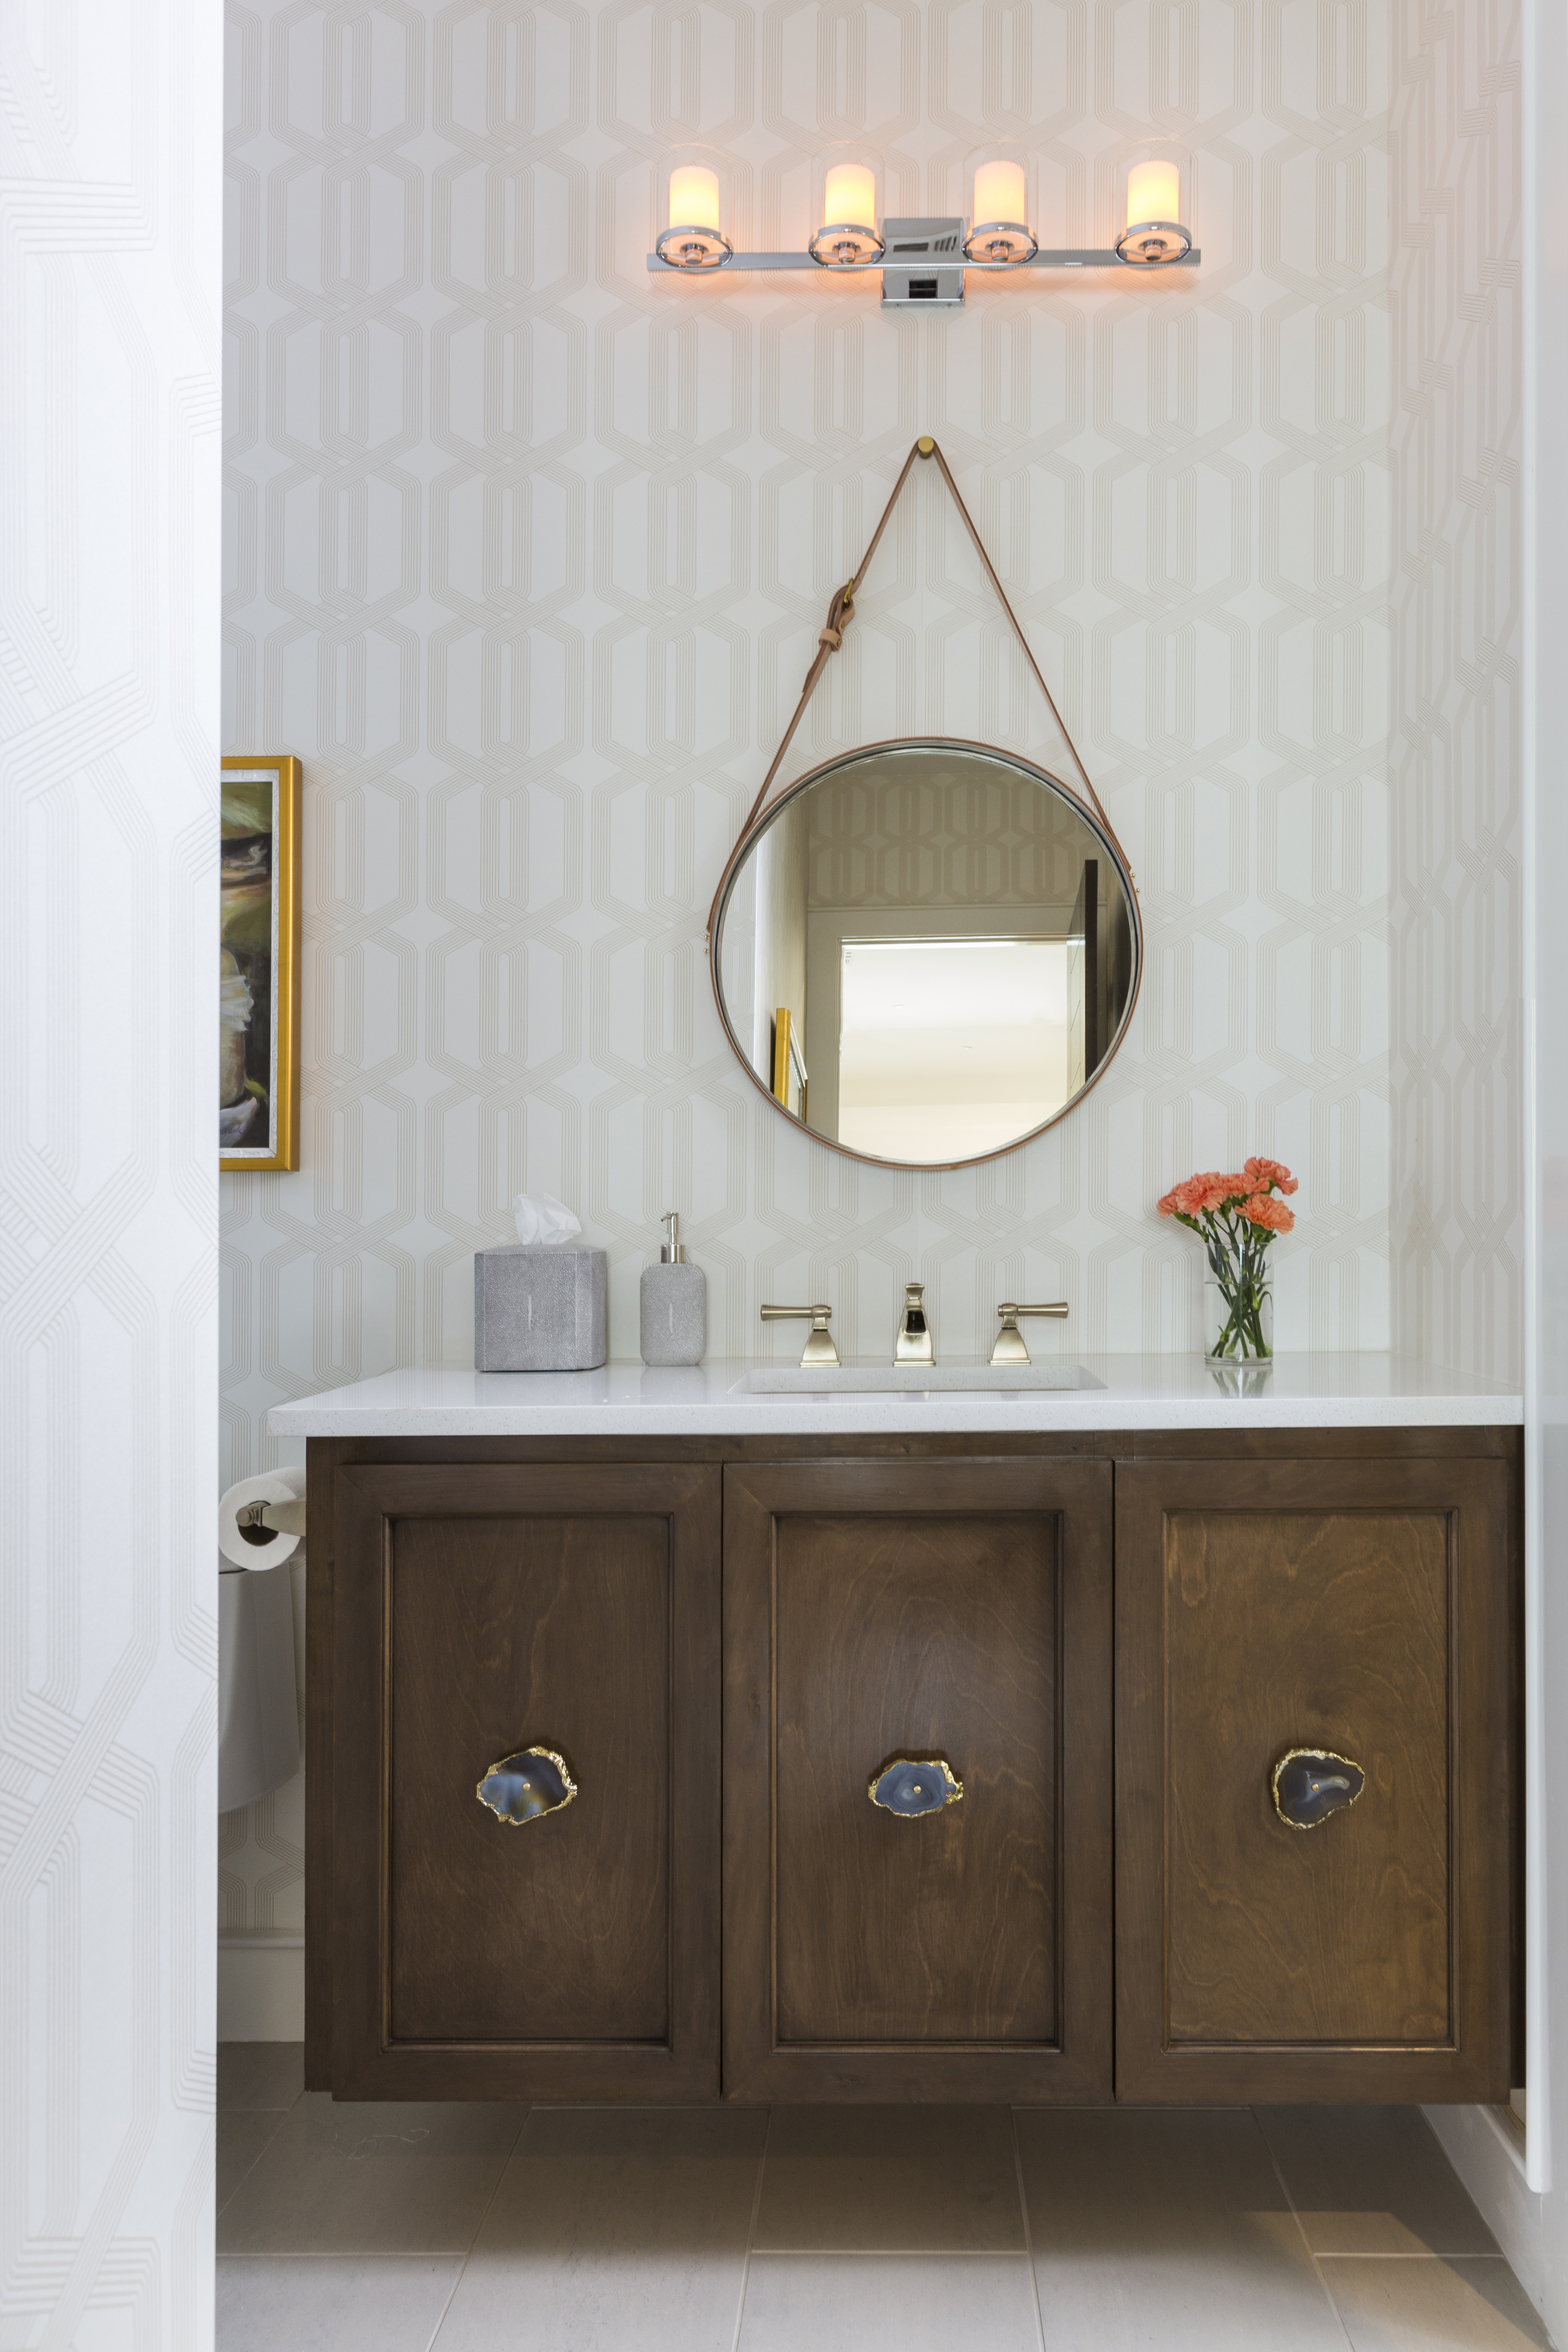 Were Obsessed With Round Mirrors In The Bathroom Laura U within size 3840 X 5760